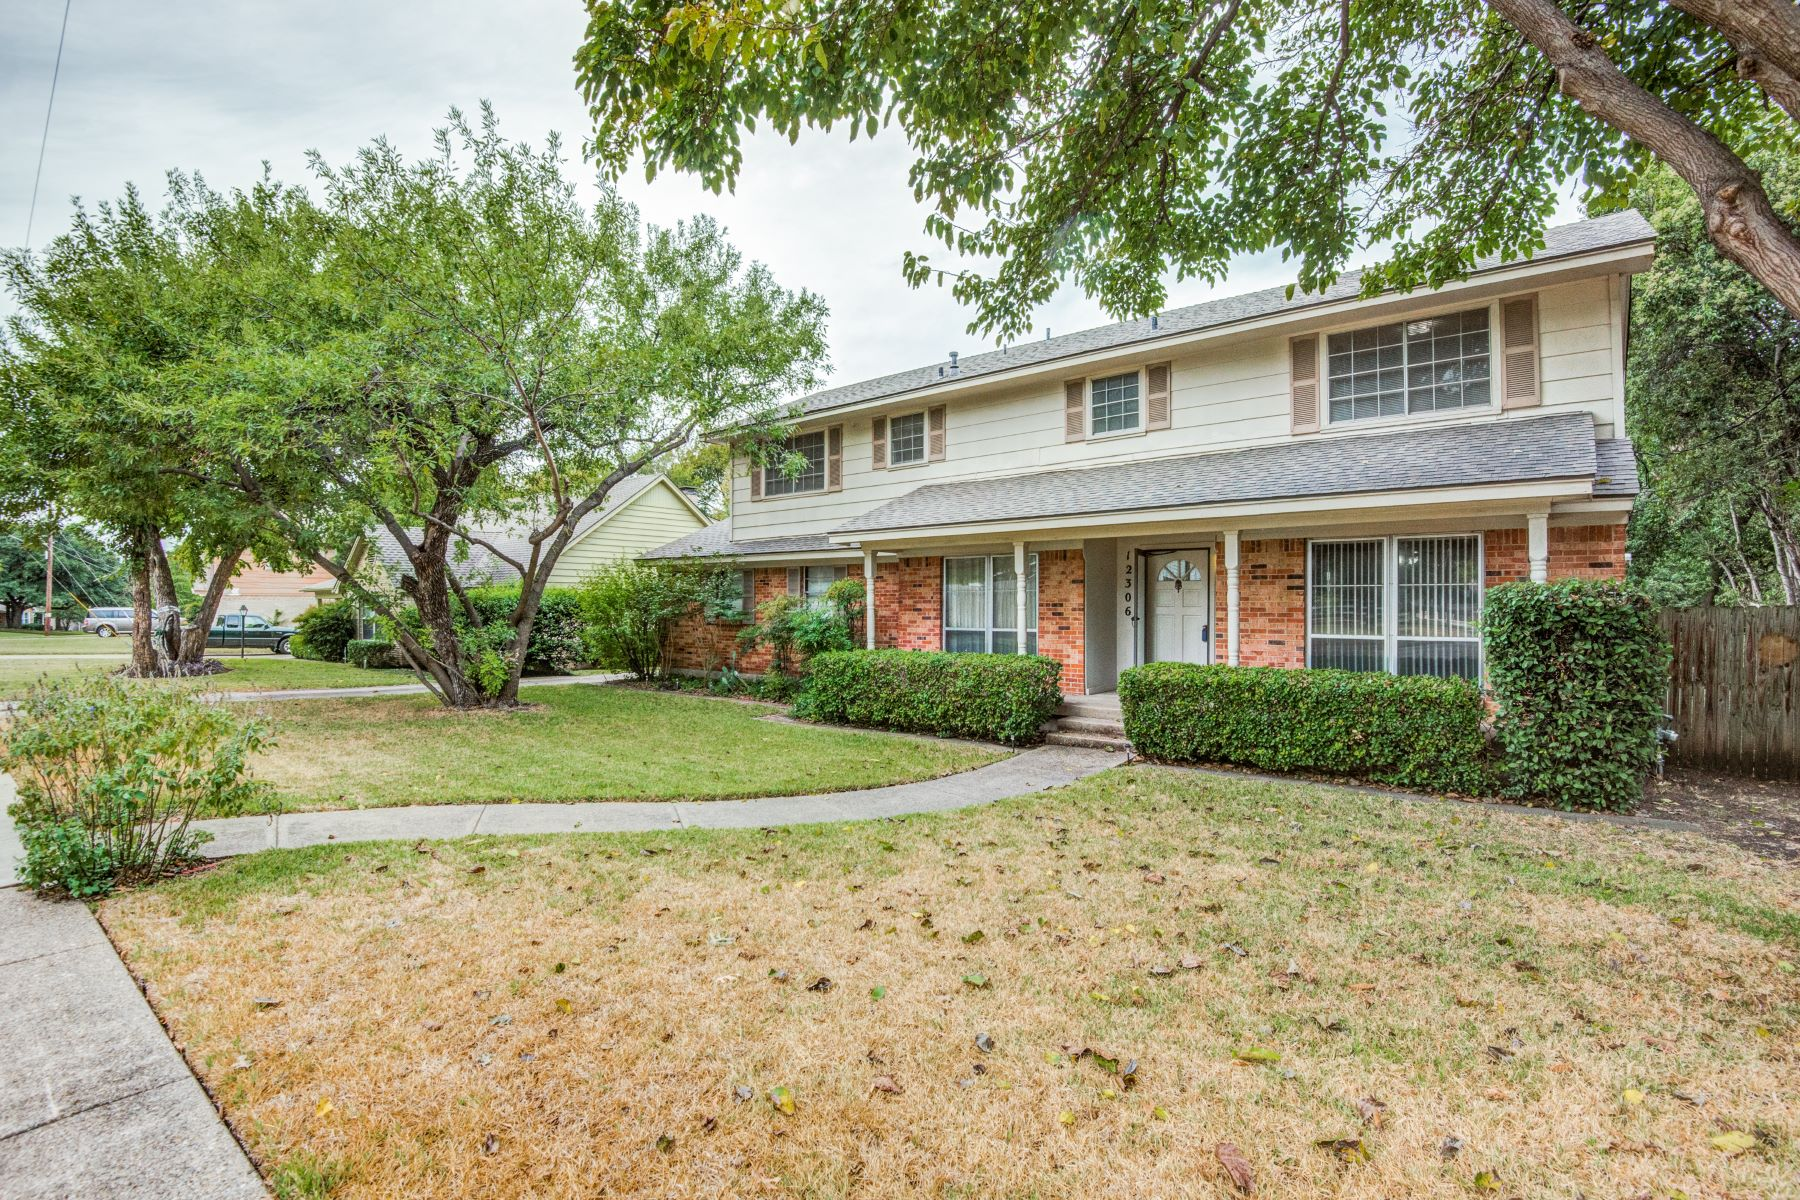 Single Family Homes for Sale at Valley View Estates 12306 Veronica Road, Farmers Branch, Texas 75234 United States